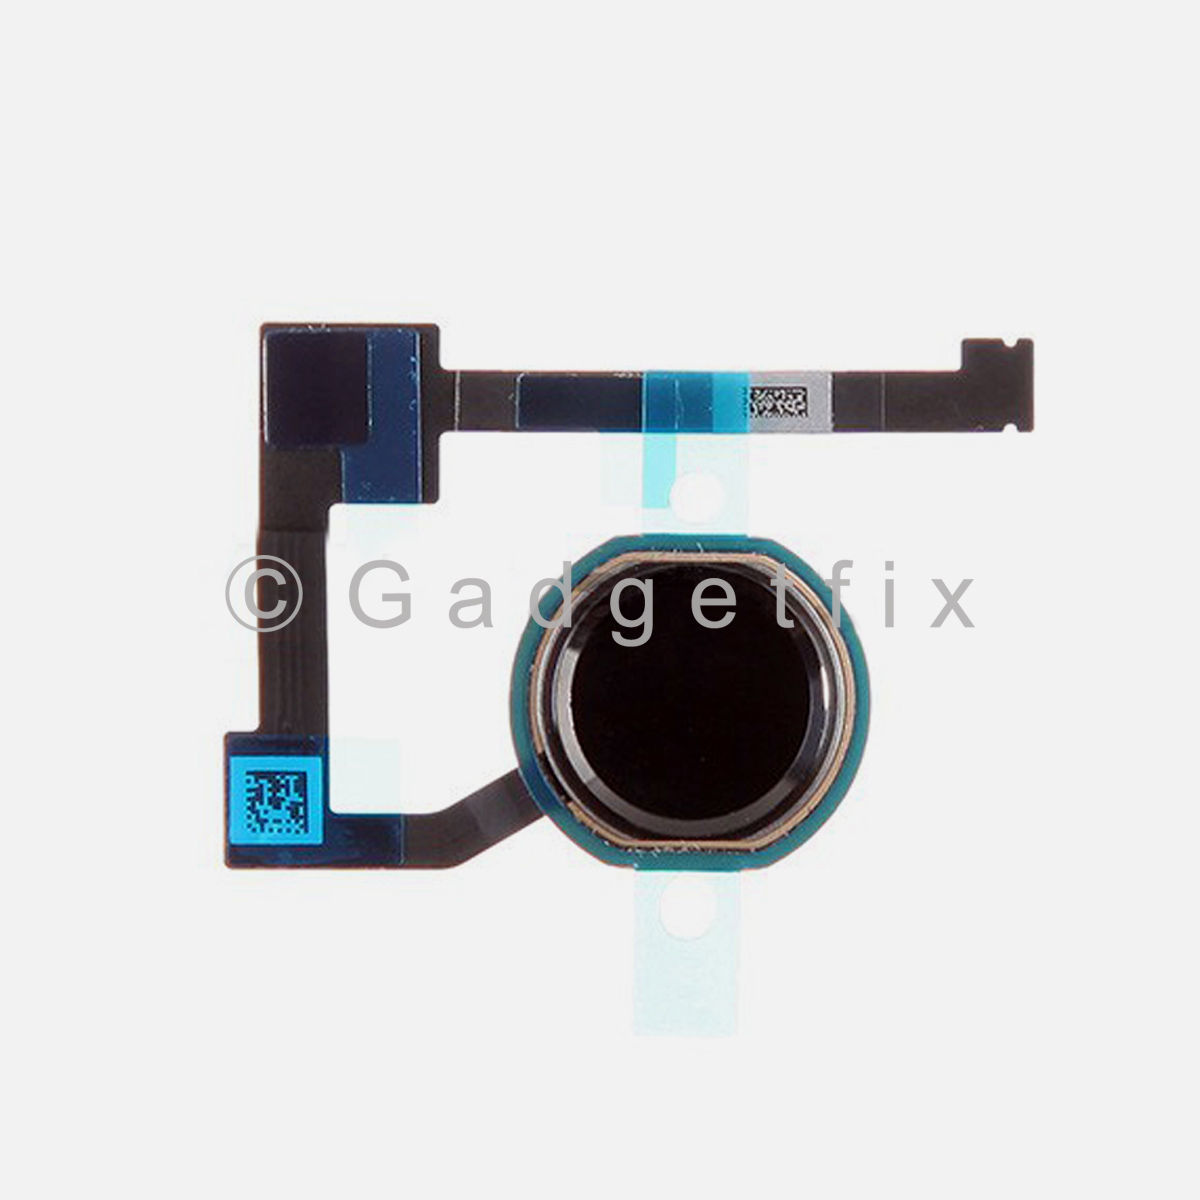 Black Home Menu Button Flex Cable Replacement Part for iPad Air 2 A1566 A1567